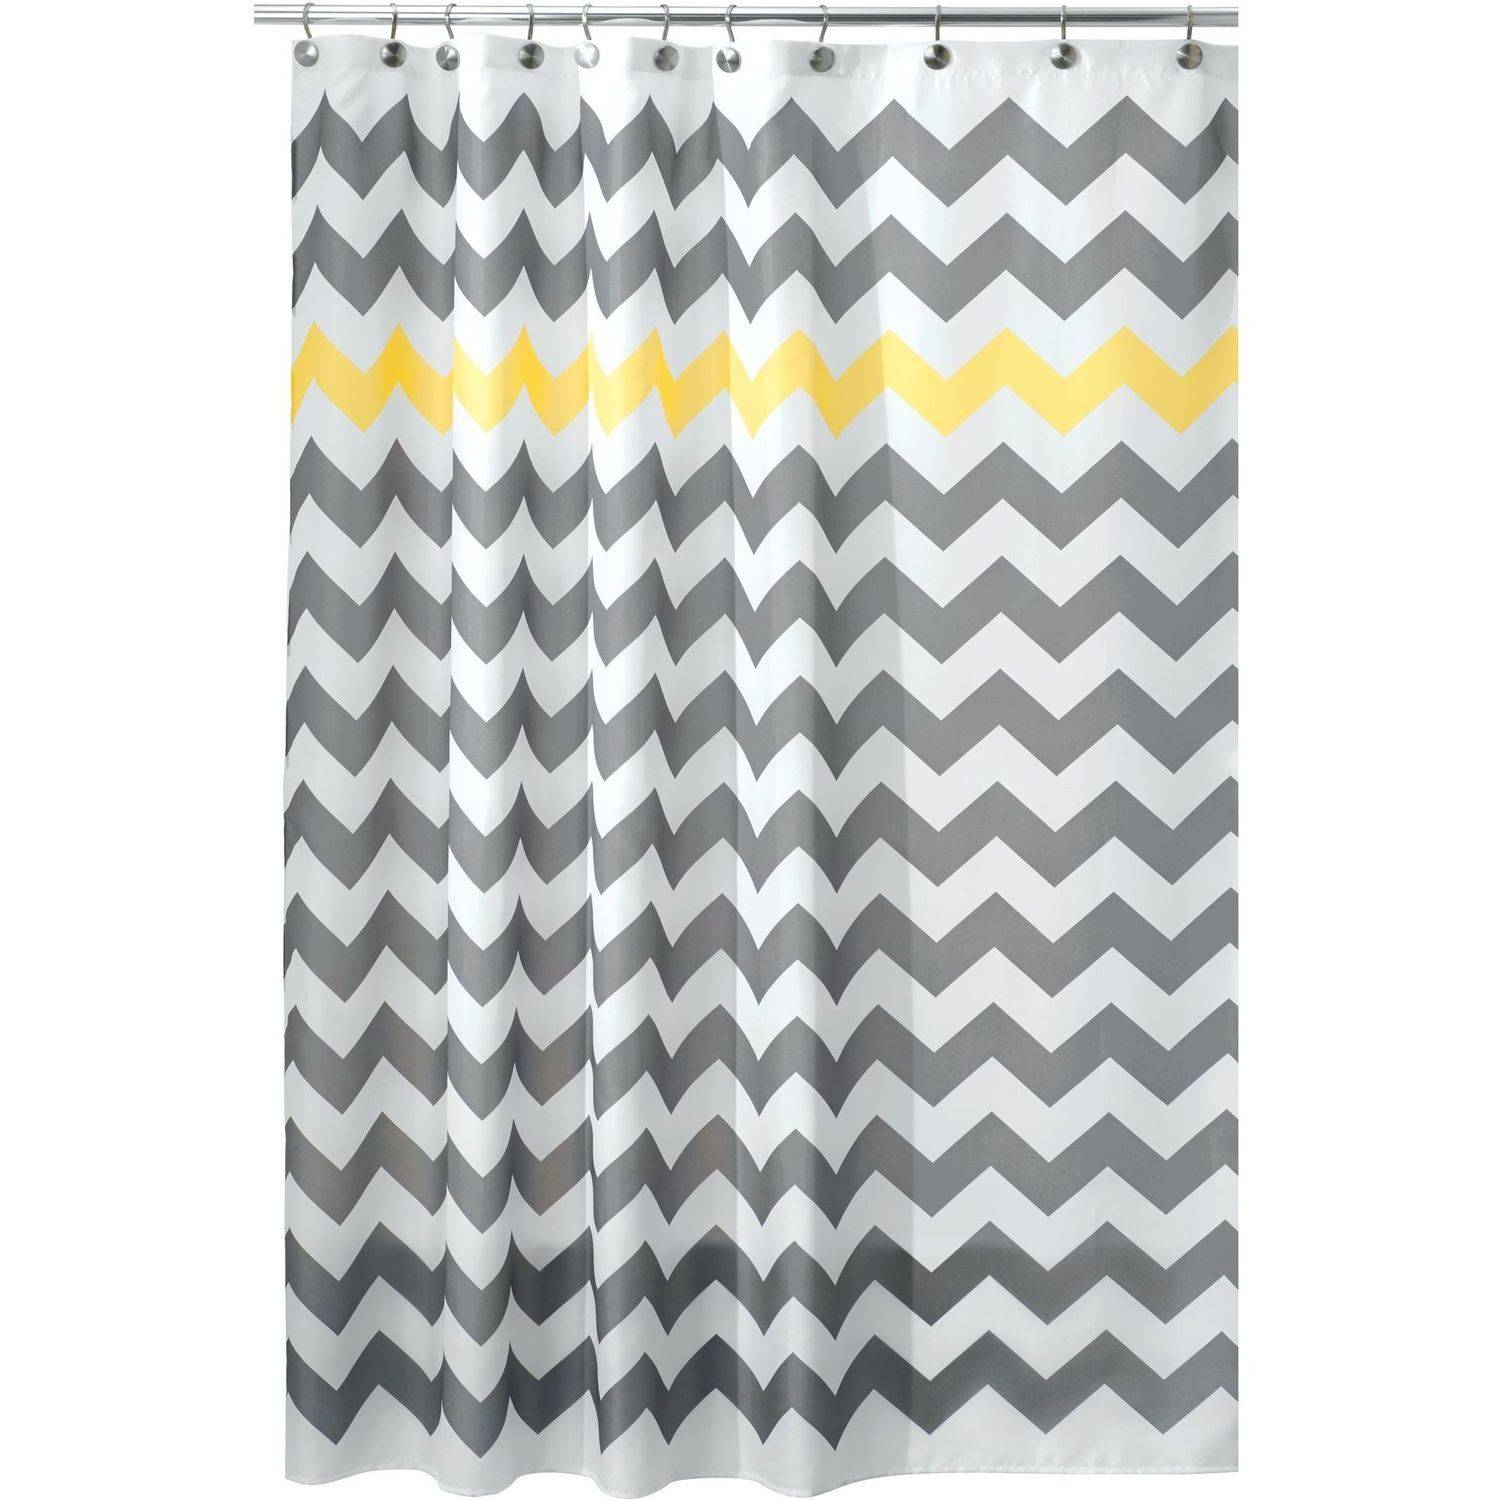 InterDesign Chevron Fabric Shower Curtain, Various Sizes & Colors